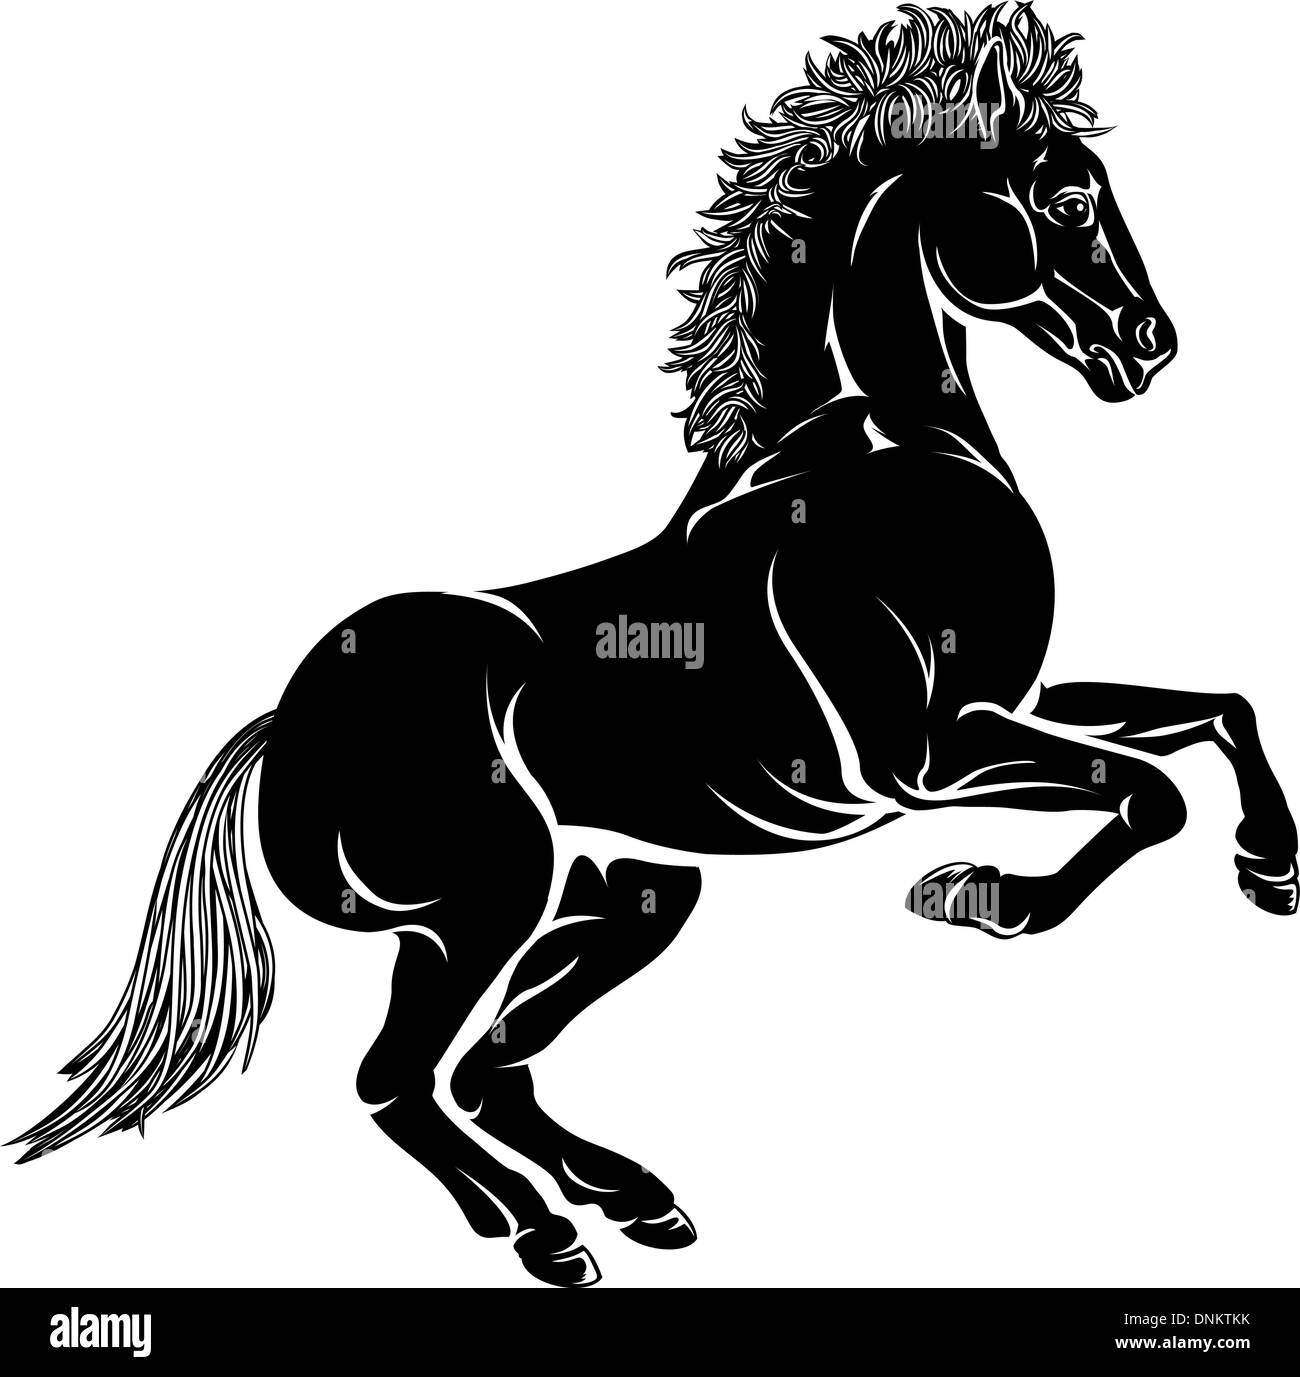 An Illustration Of A Stylised Horse Perhaps A Horse Tattoo Stock Vector Image Art Alamy